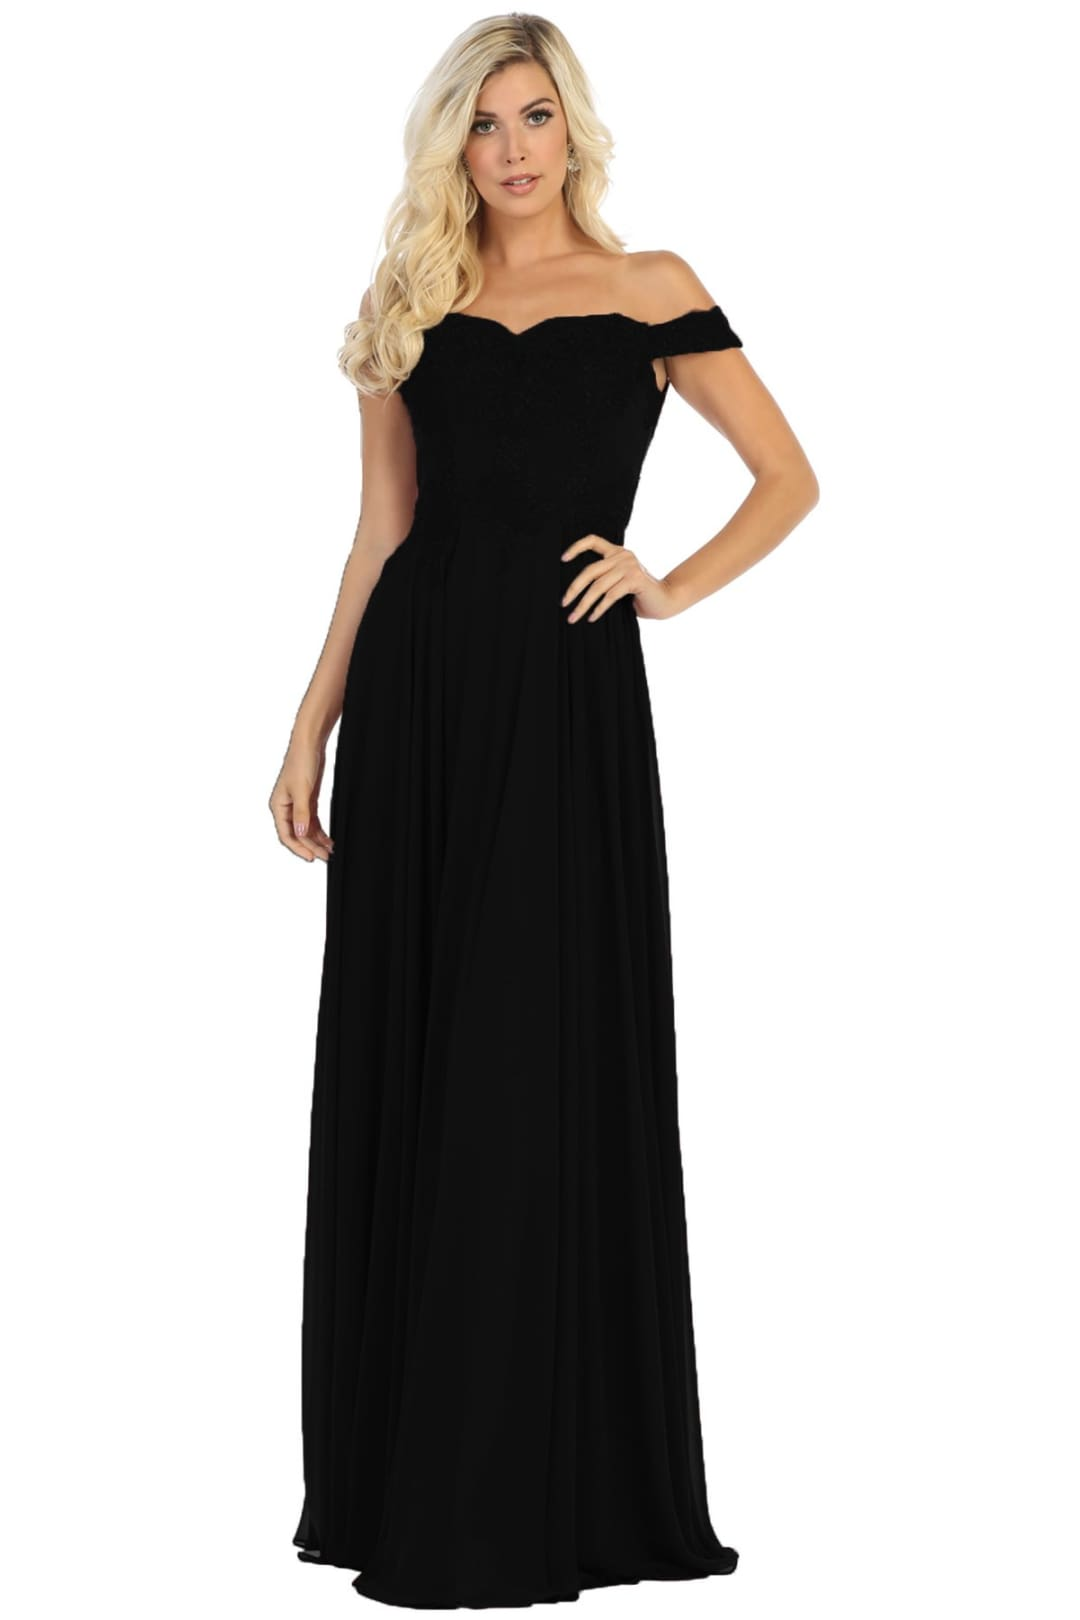 Off Shoulder Prom Dress - Black / 2